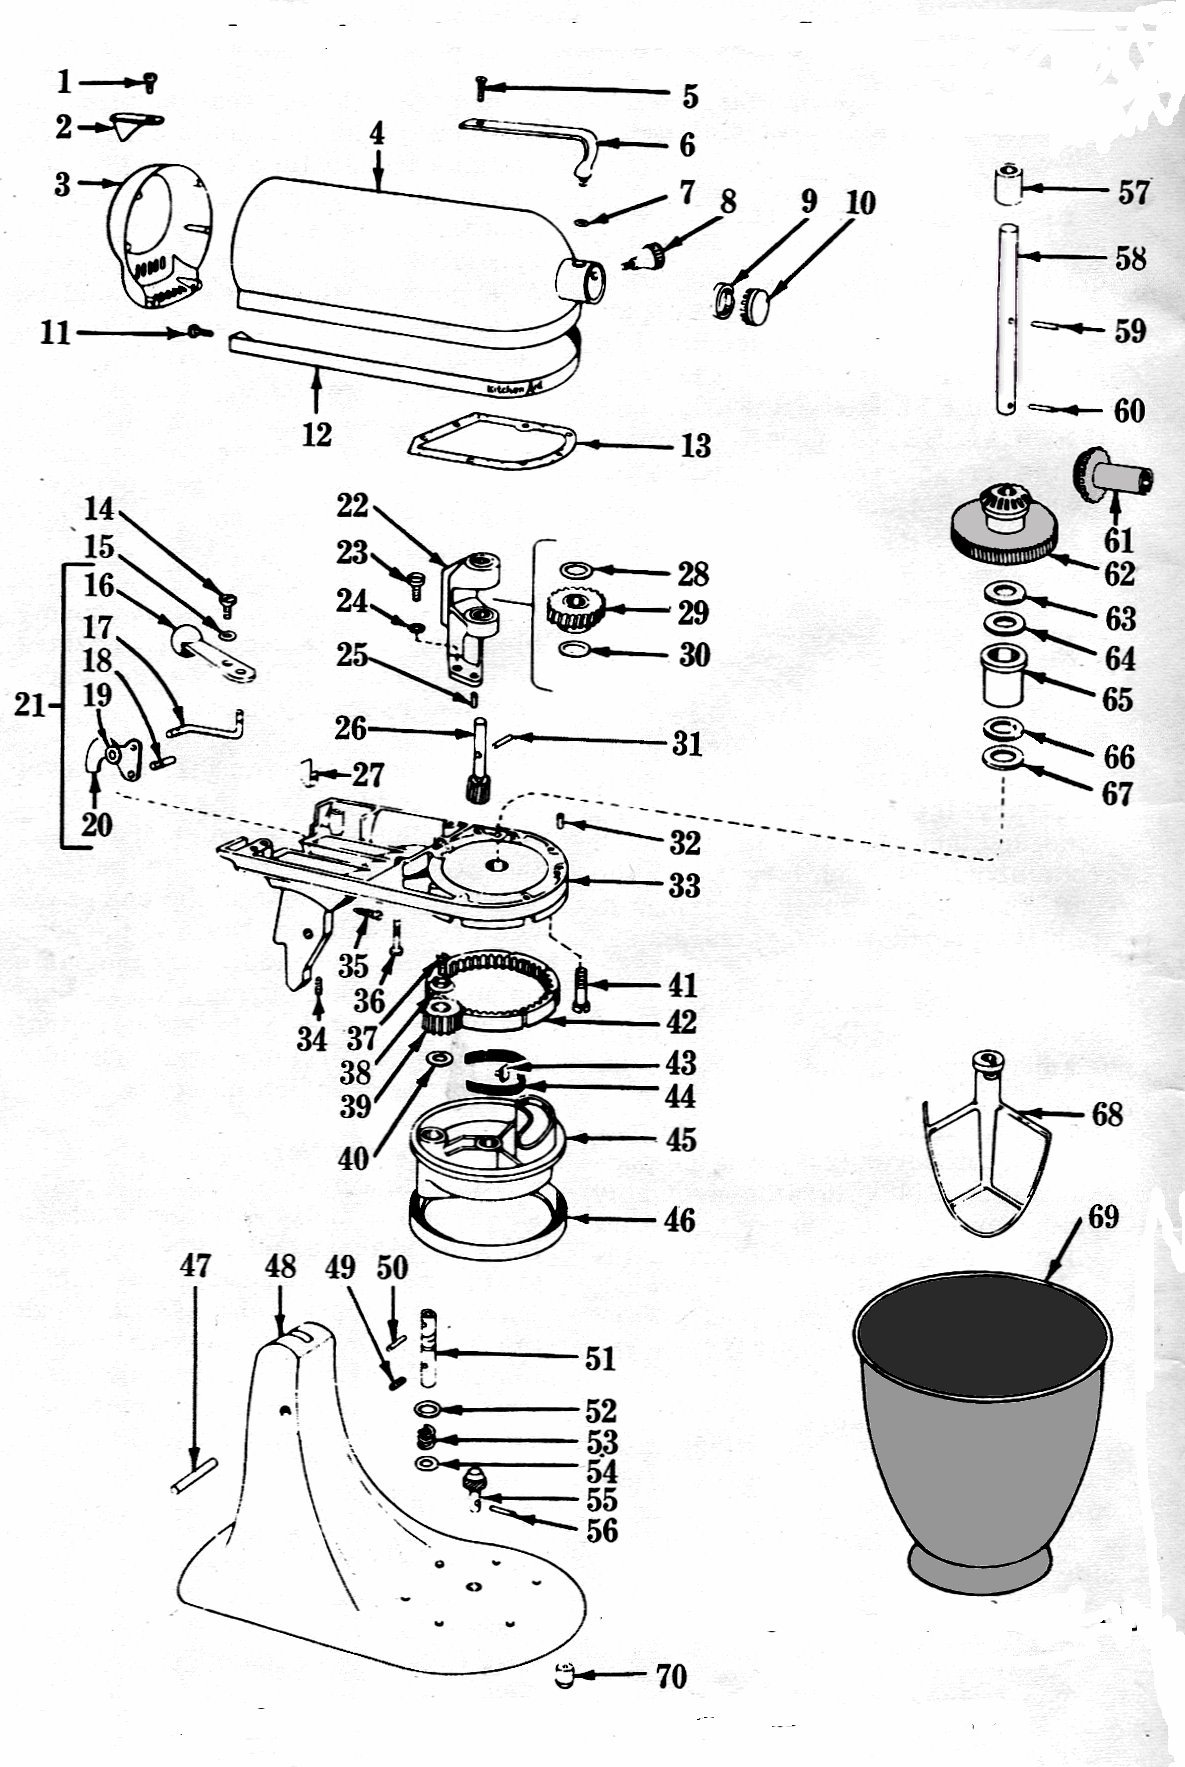 kitchenaid repair manual  u2013 besto blog